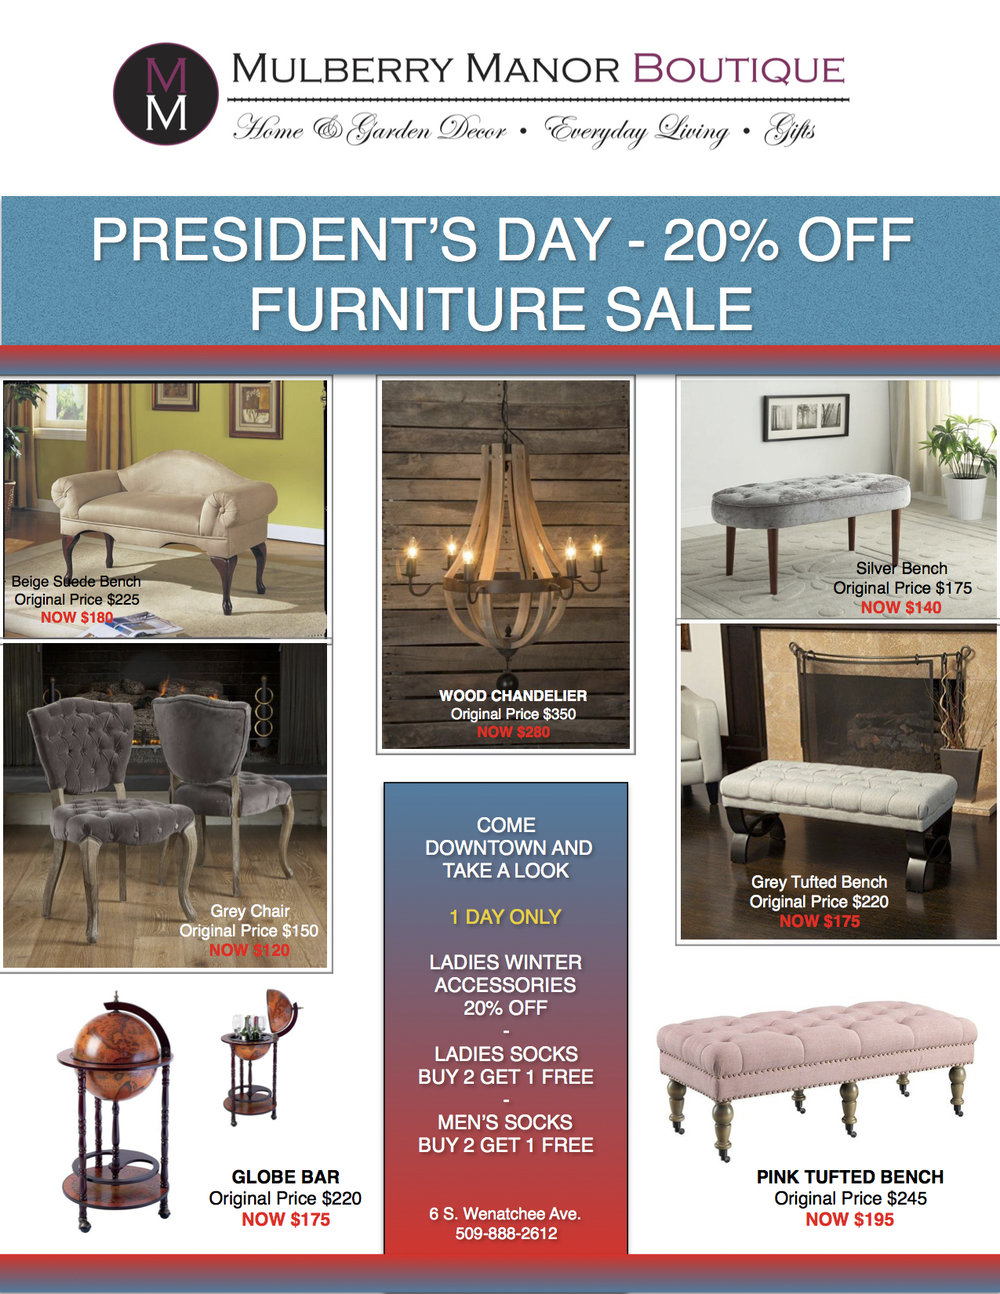 Mulberry manor boutique presidents day sale jpg